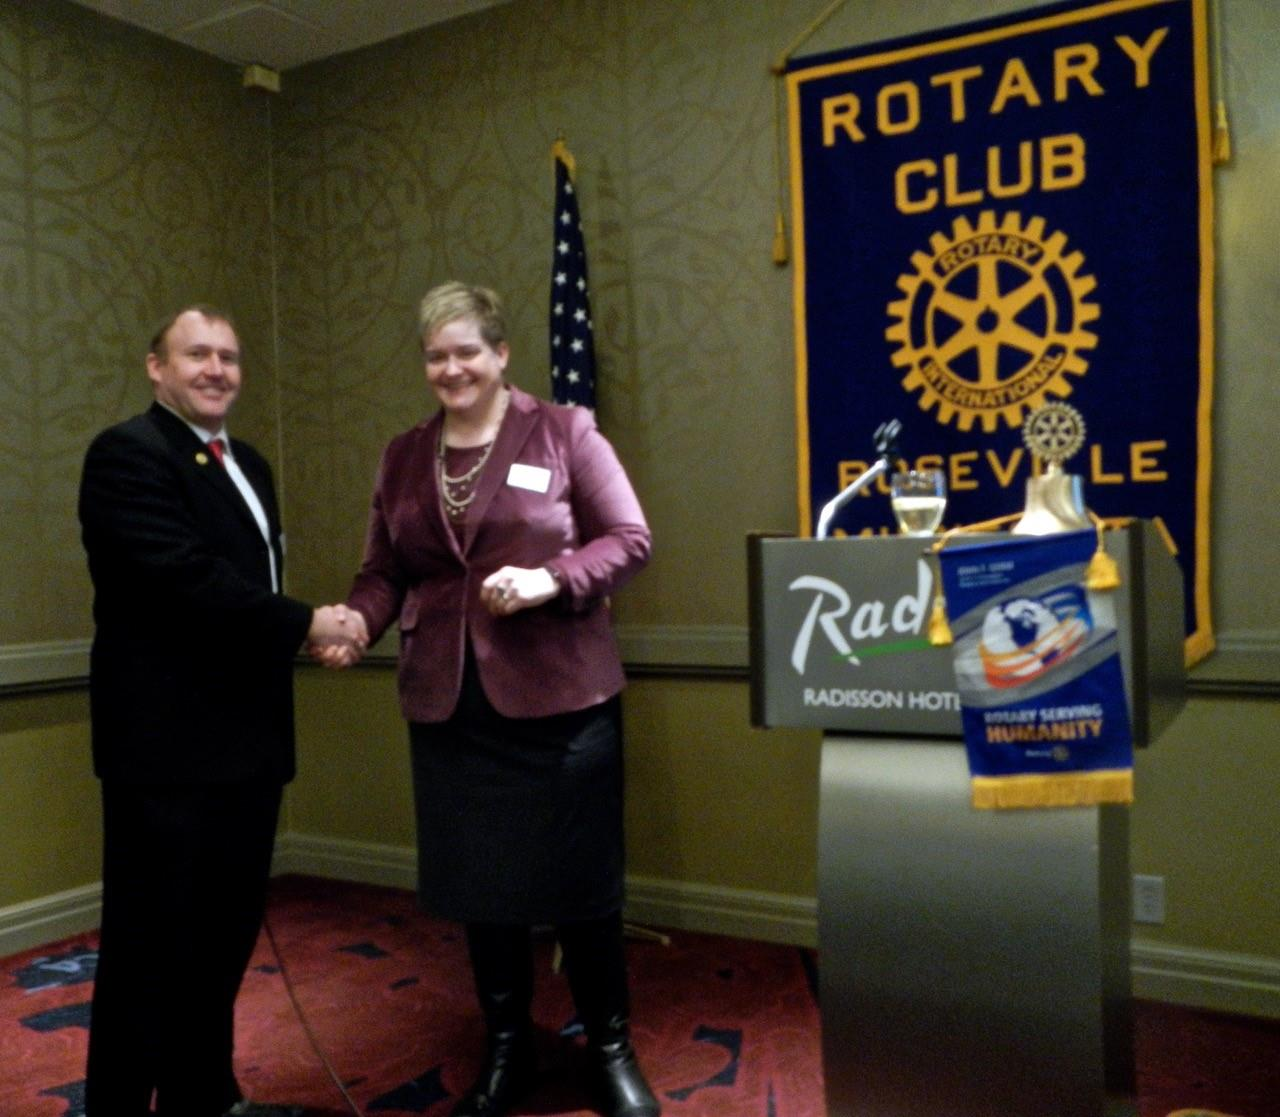 Stories | Rotary Club of Roseville - MN